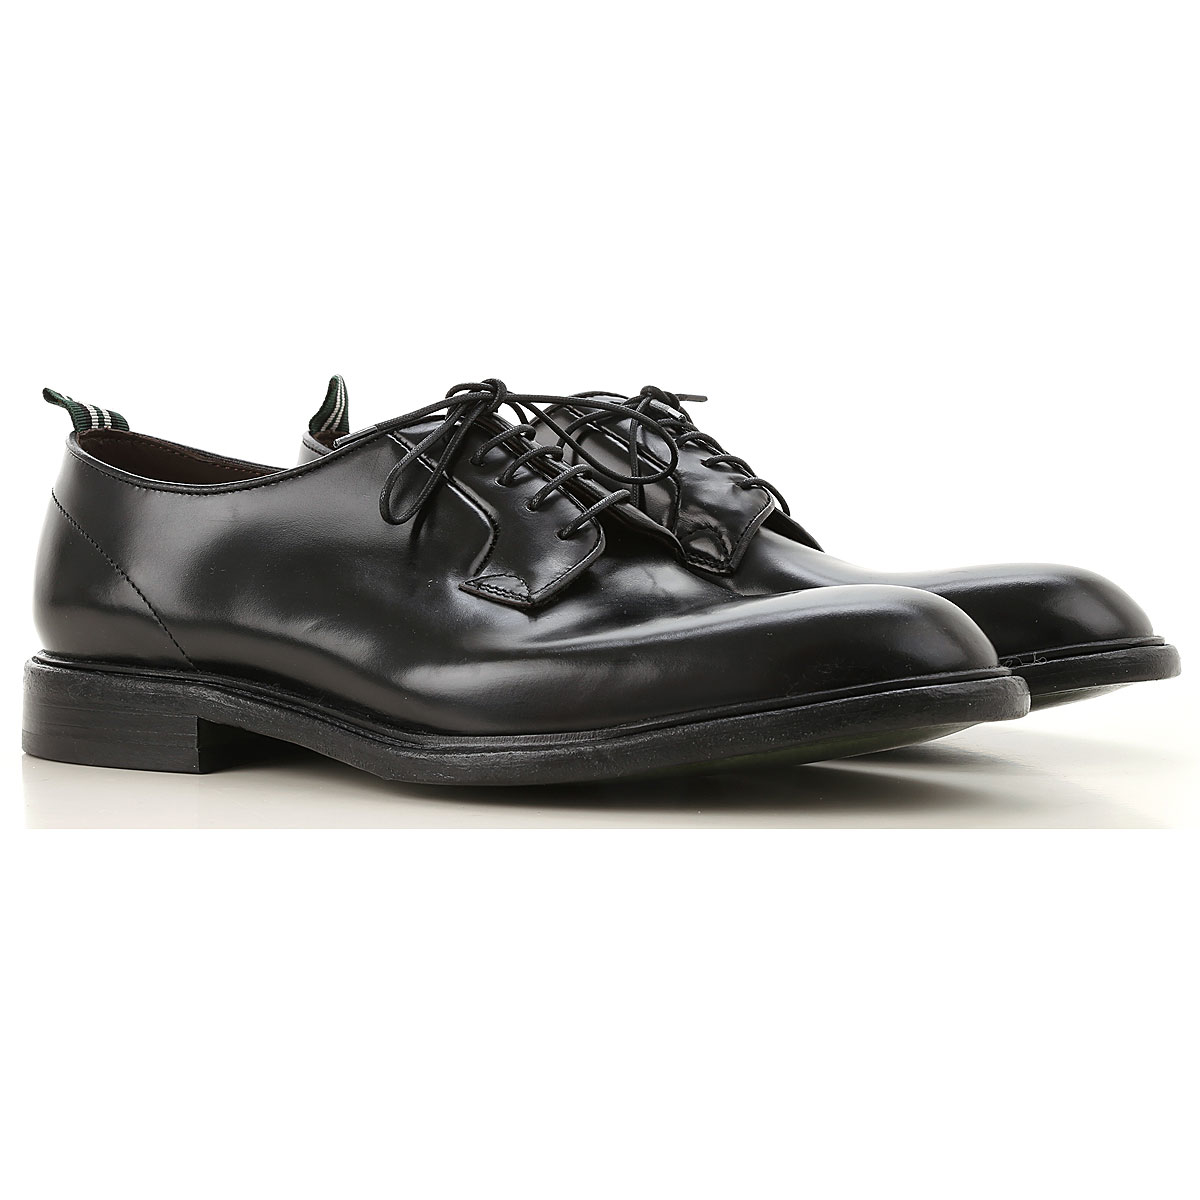 Green George Lace Up Shoes for Men Oxfords 11 9 Derbies and Brogues On Sale UK - GOOFASH